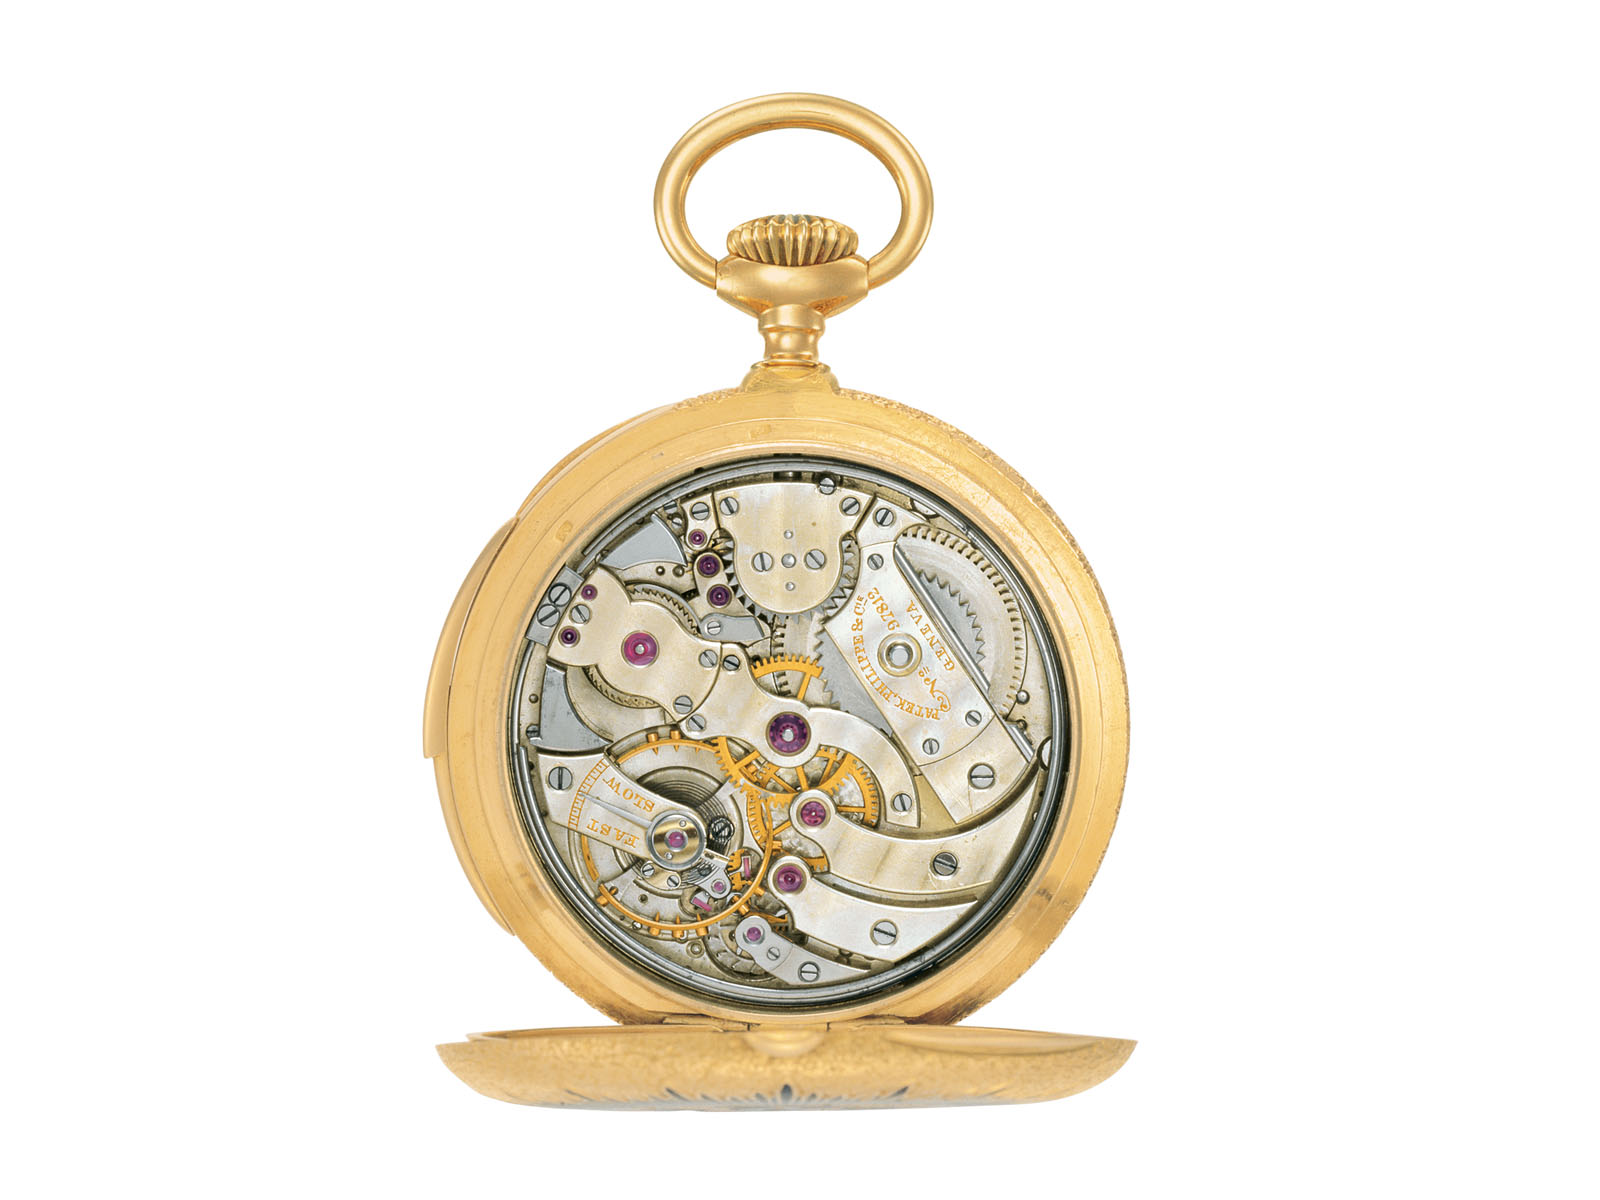 Patek Philippe King of Siam Pocket Watch 2